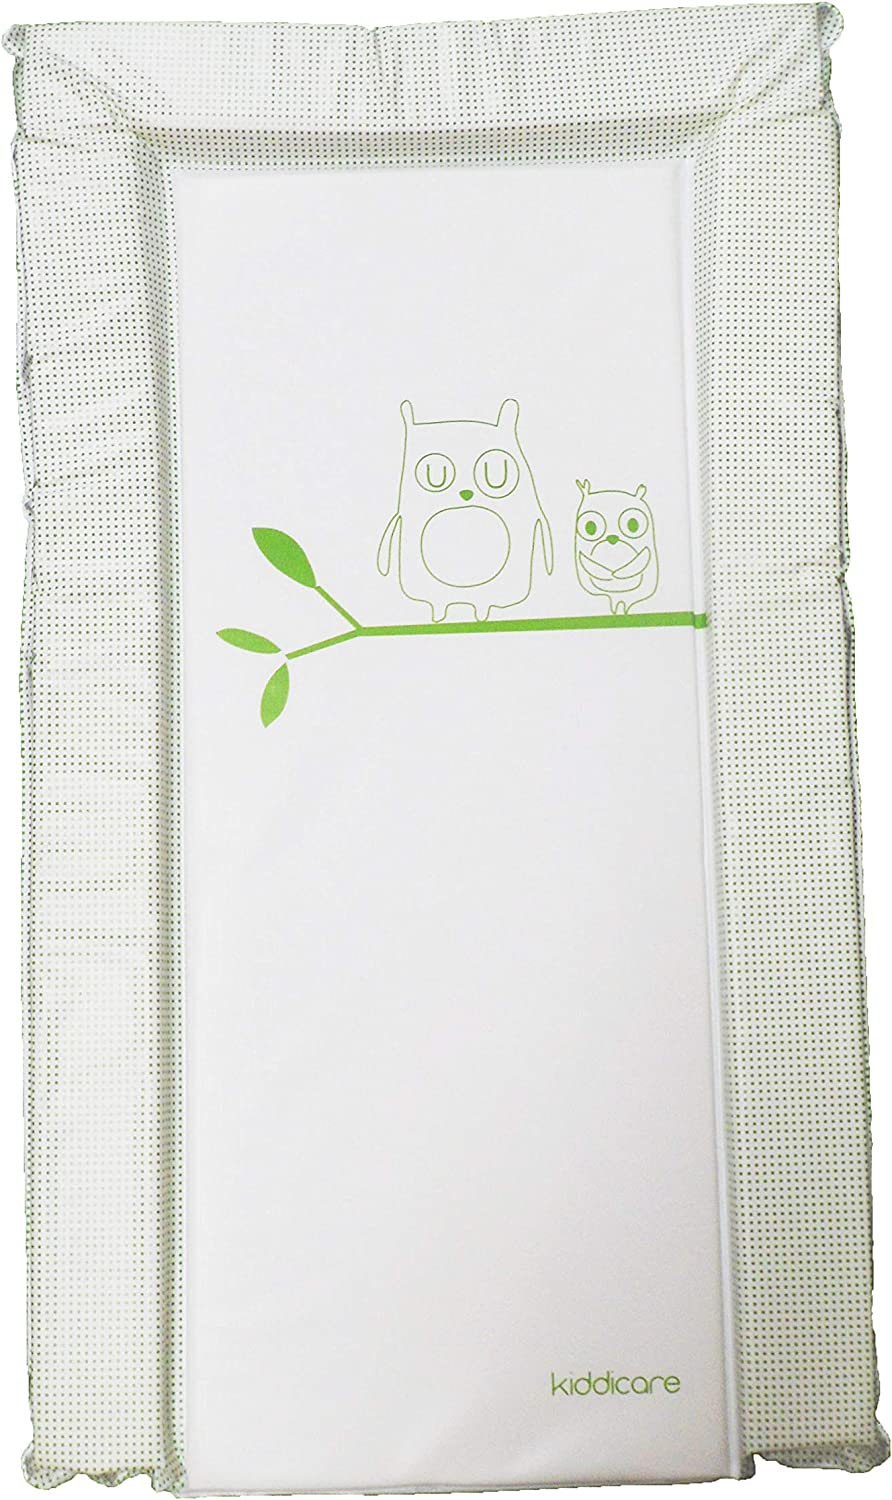 Essential Unisex Waterproof Nursery Baby Changing Mat with Raised Edges Green Owl Design